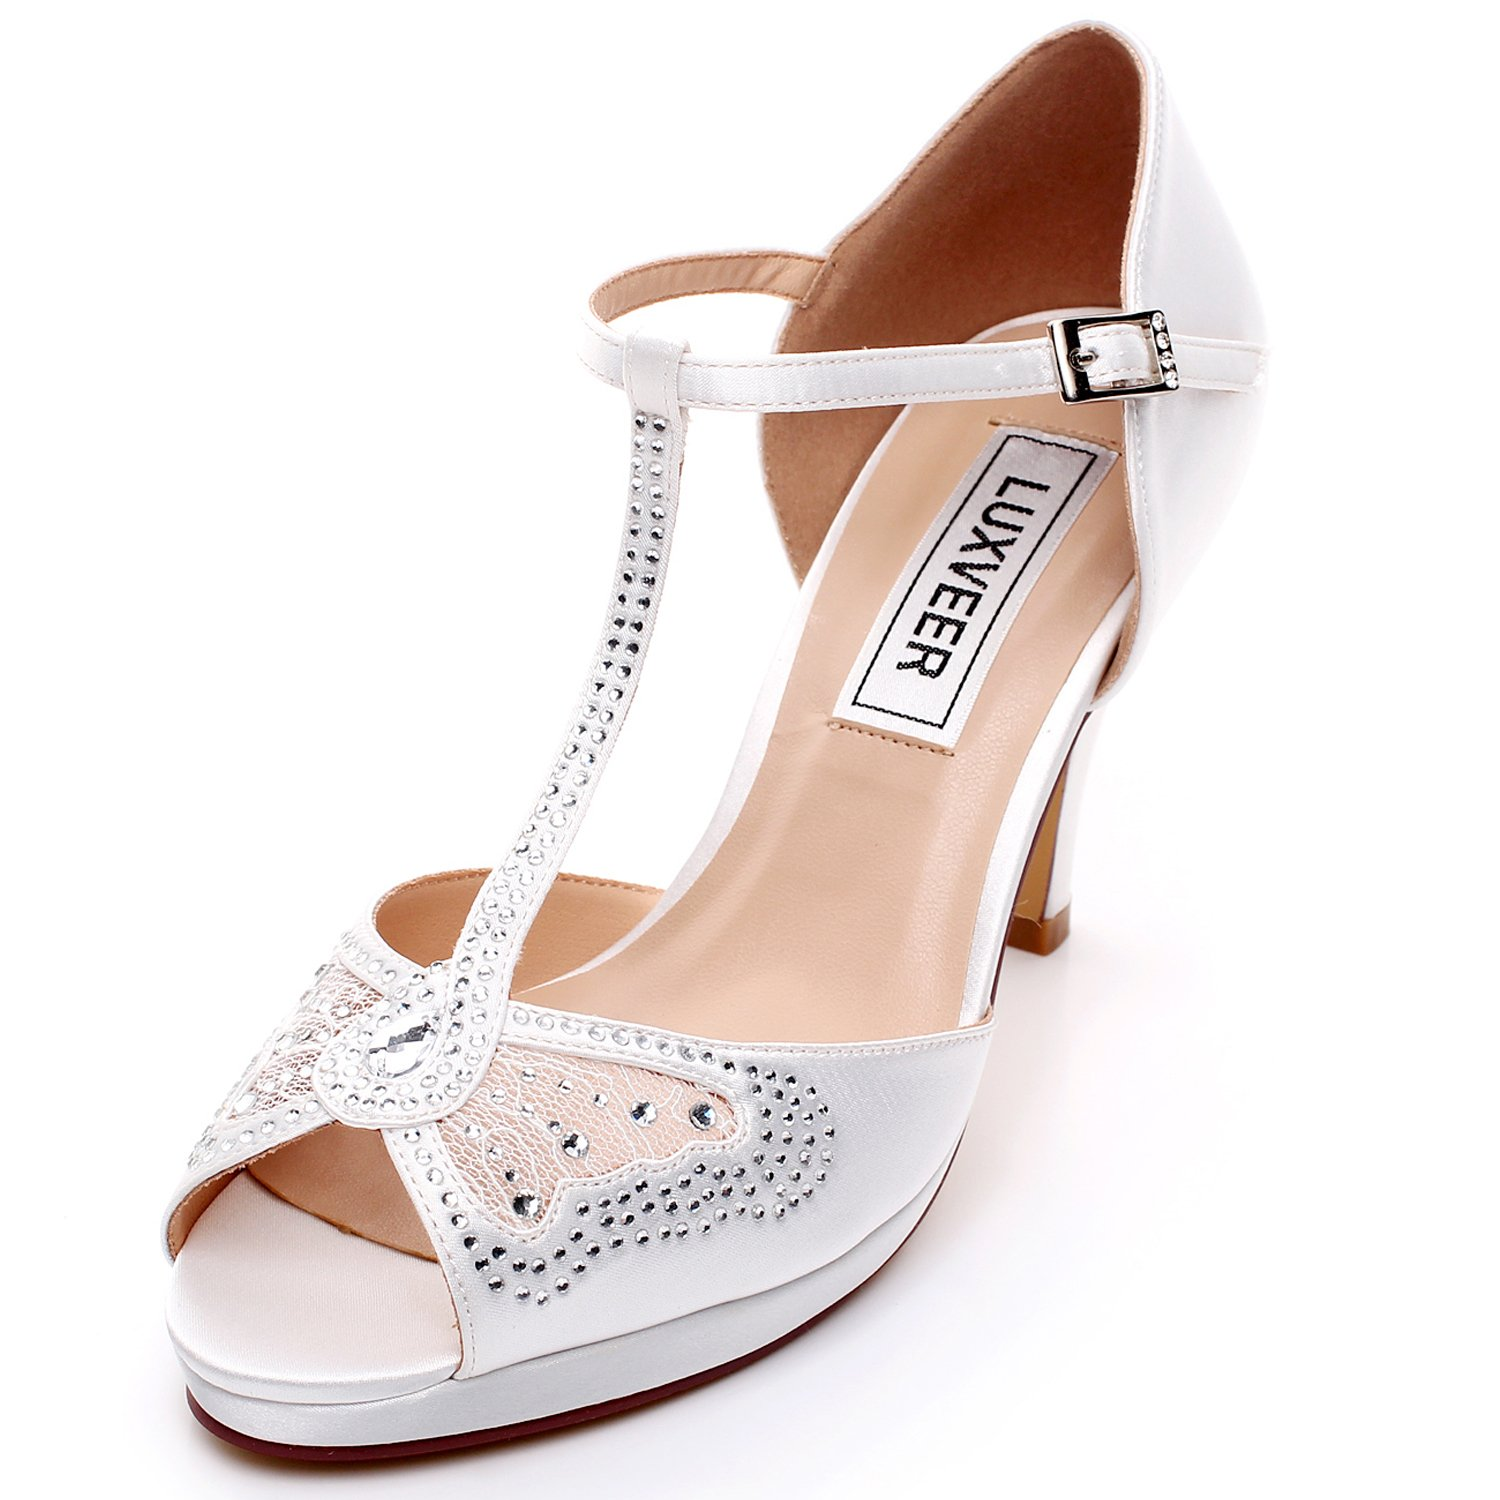 Vintage Inspired Wedding Dress | Vintage Style Wedding Dresses LUXVEER Women Wedding Sandals with Silver Rhinestone and Lace Butterfly - Heels 3.5inch $58.97 AT vintagedancer.com